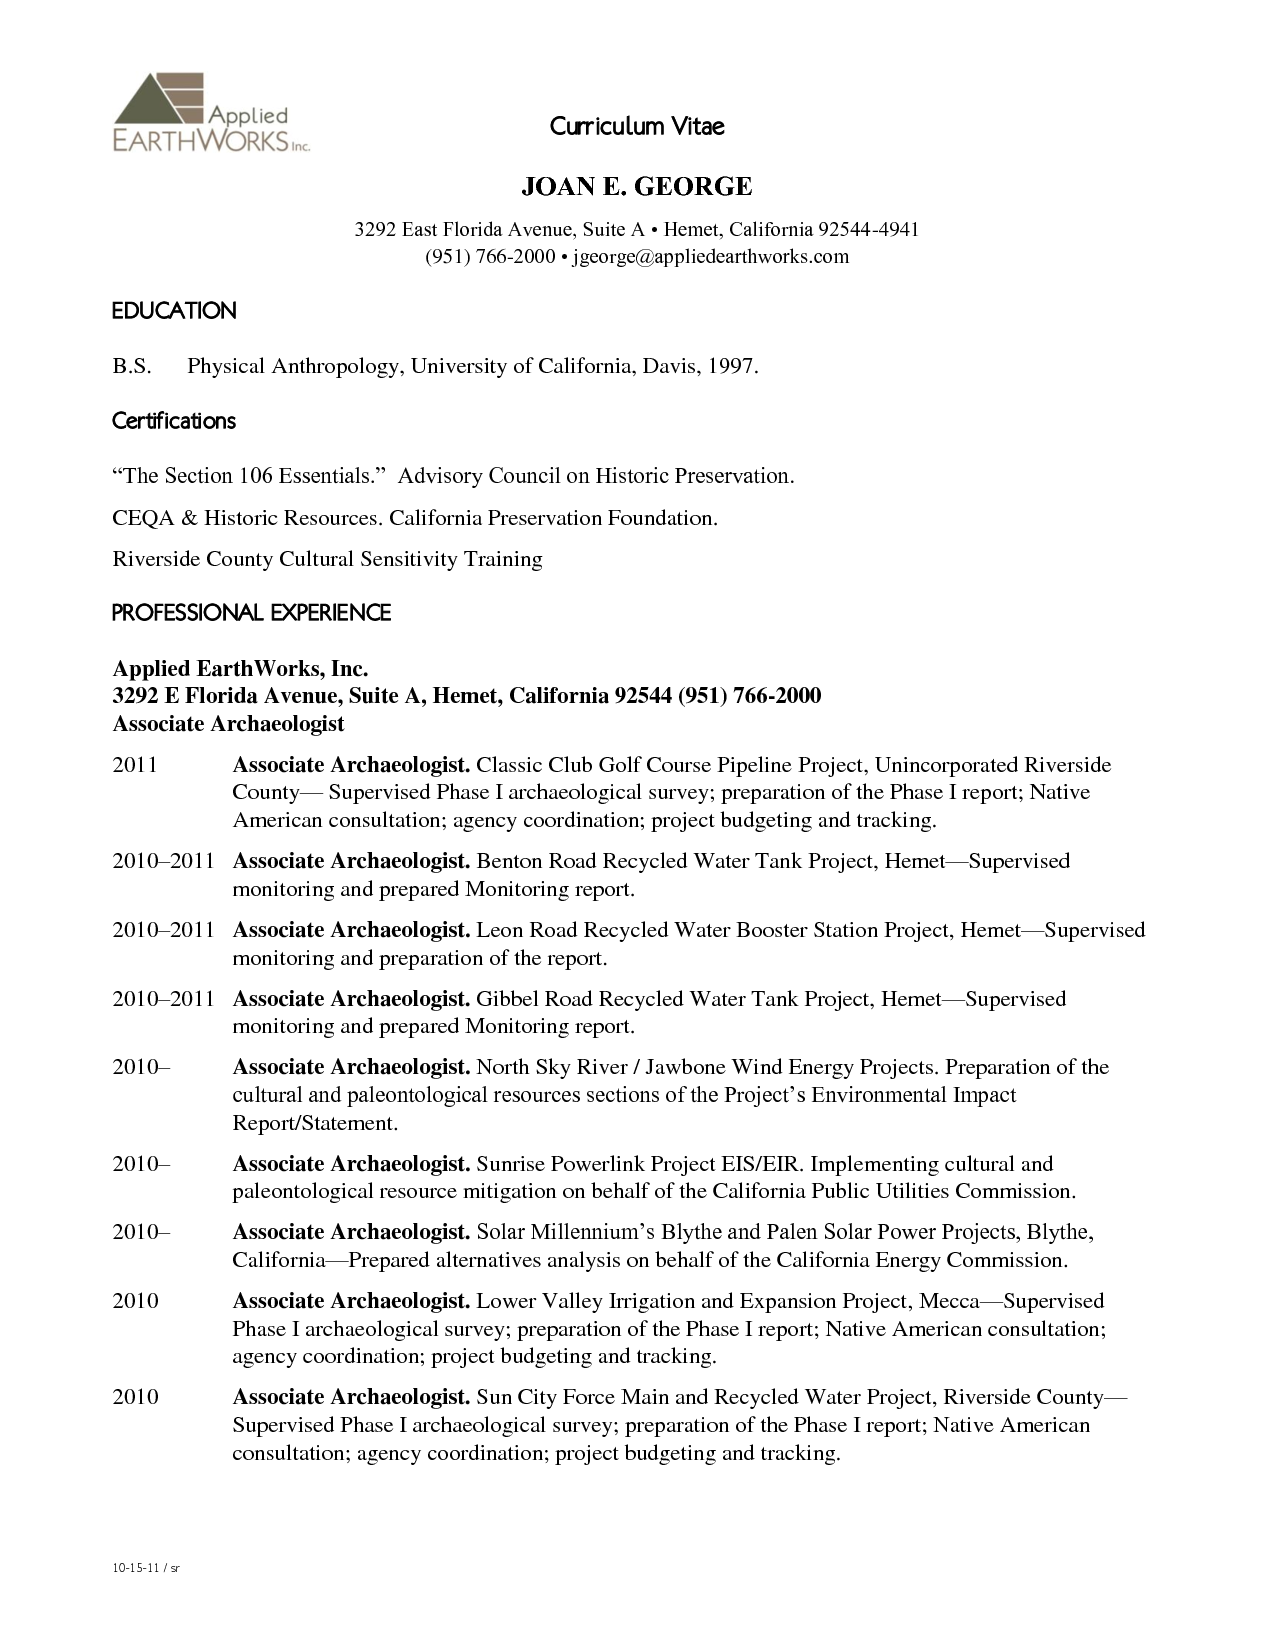 Resume Template Downloads Resume Template Download Pdf Resume Template Download Pdf Fill In